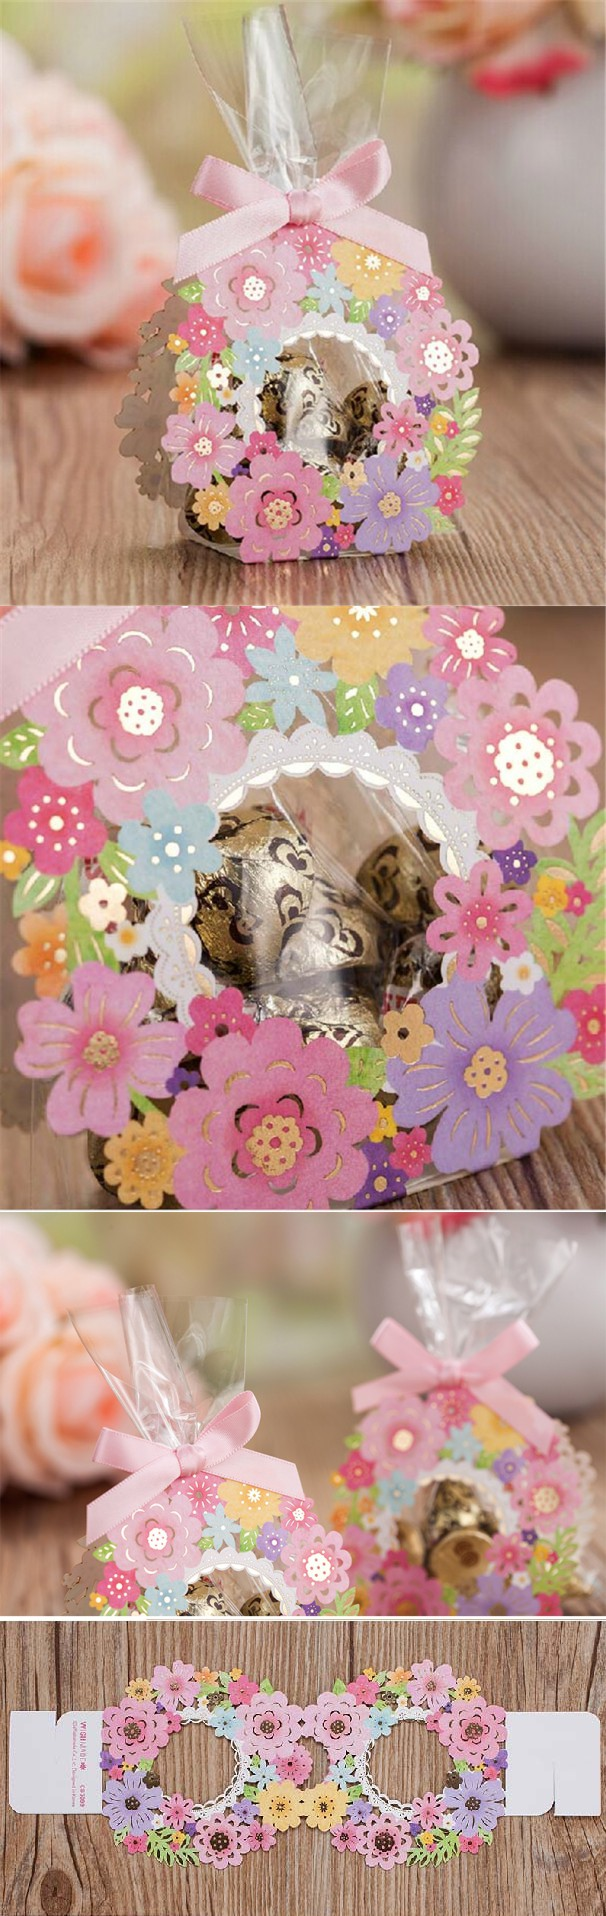 Wedding decorations paper  pcslot Pastoral Style Favors and GIfts Wedding Decor Laser Cut